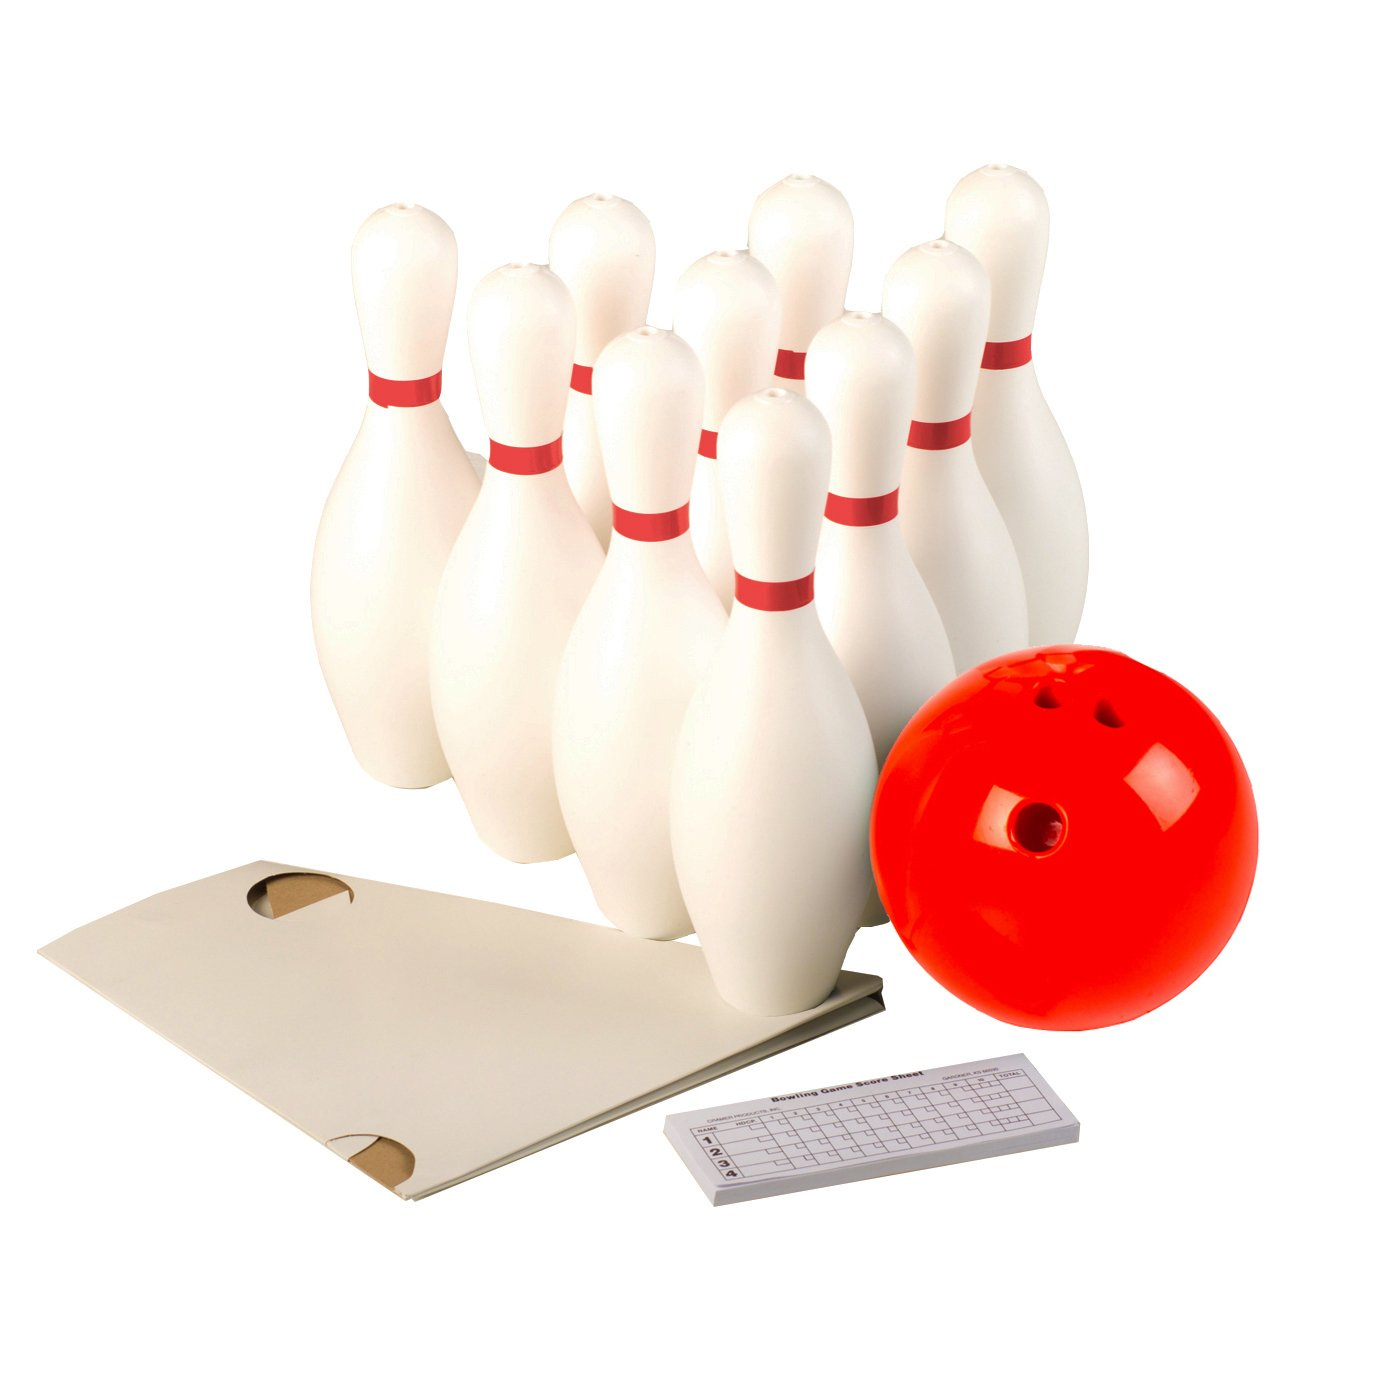 Cosom White Weighted 10 Bowling Pin Set For Youth Party Game, Kids Bowling Set, Physical Education, Regulation Height 15'', With Accessories, 3 Pound Red Rubberized Ball, Set-Up Sheet and Score Pad